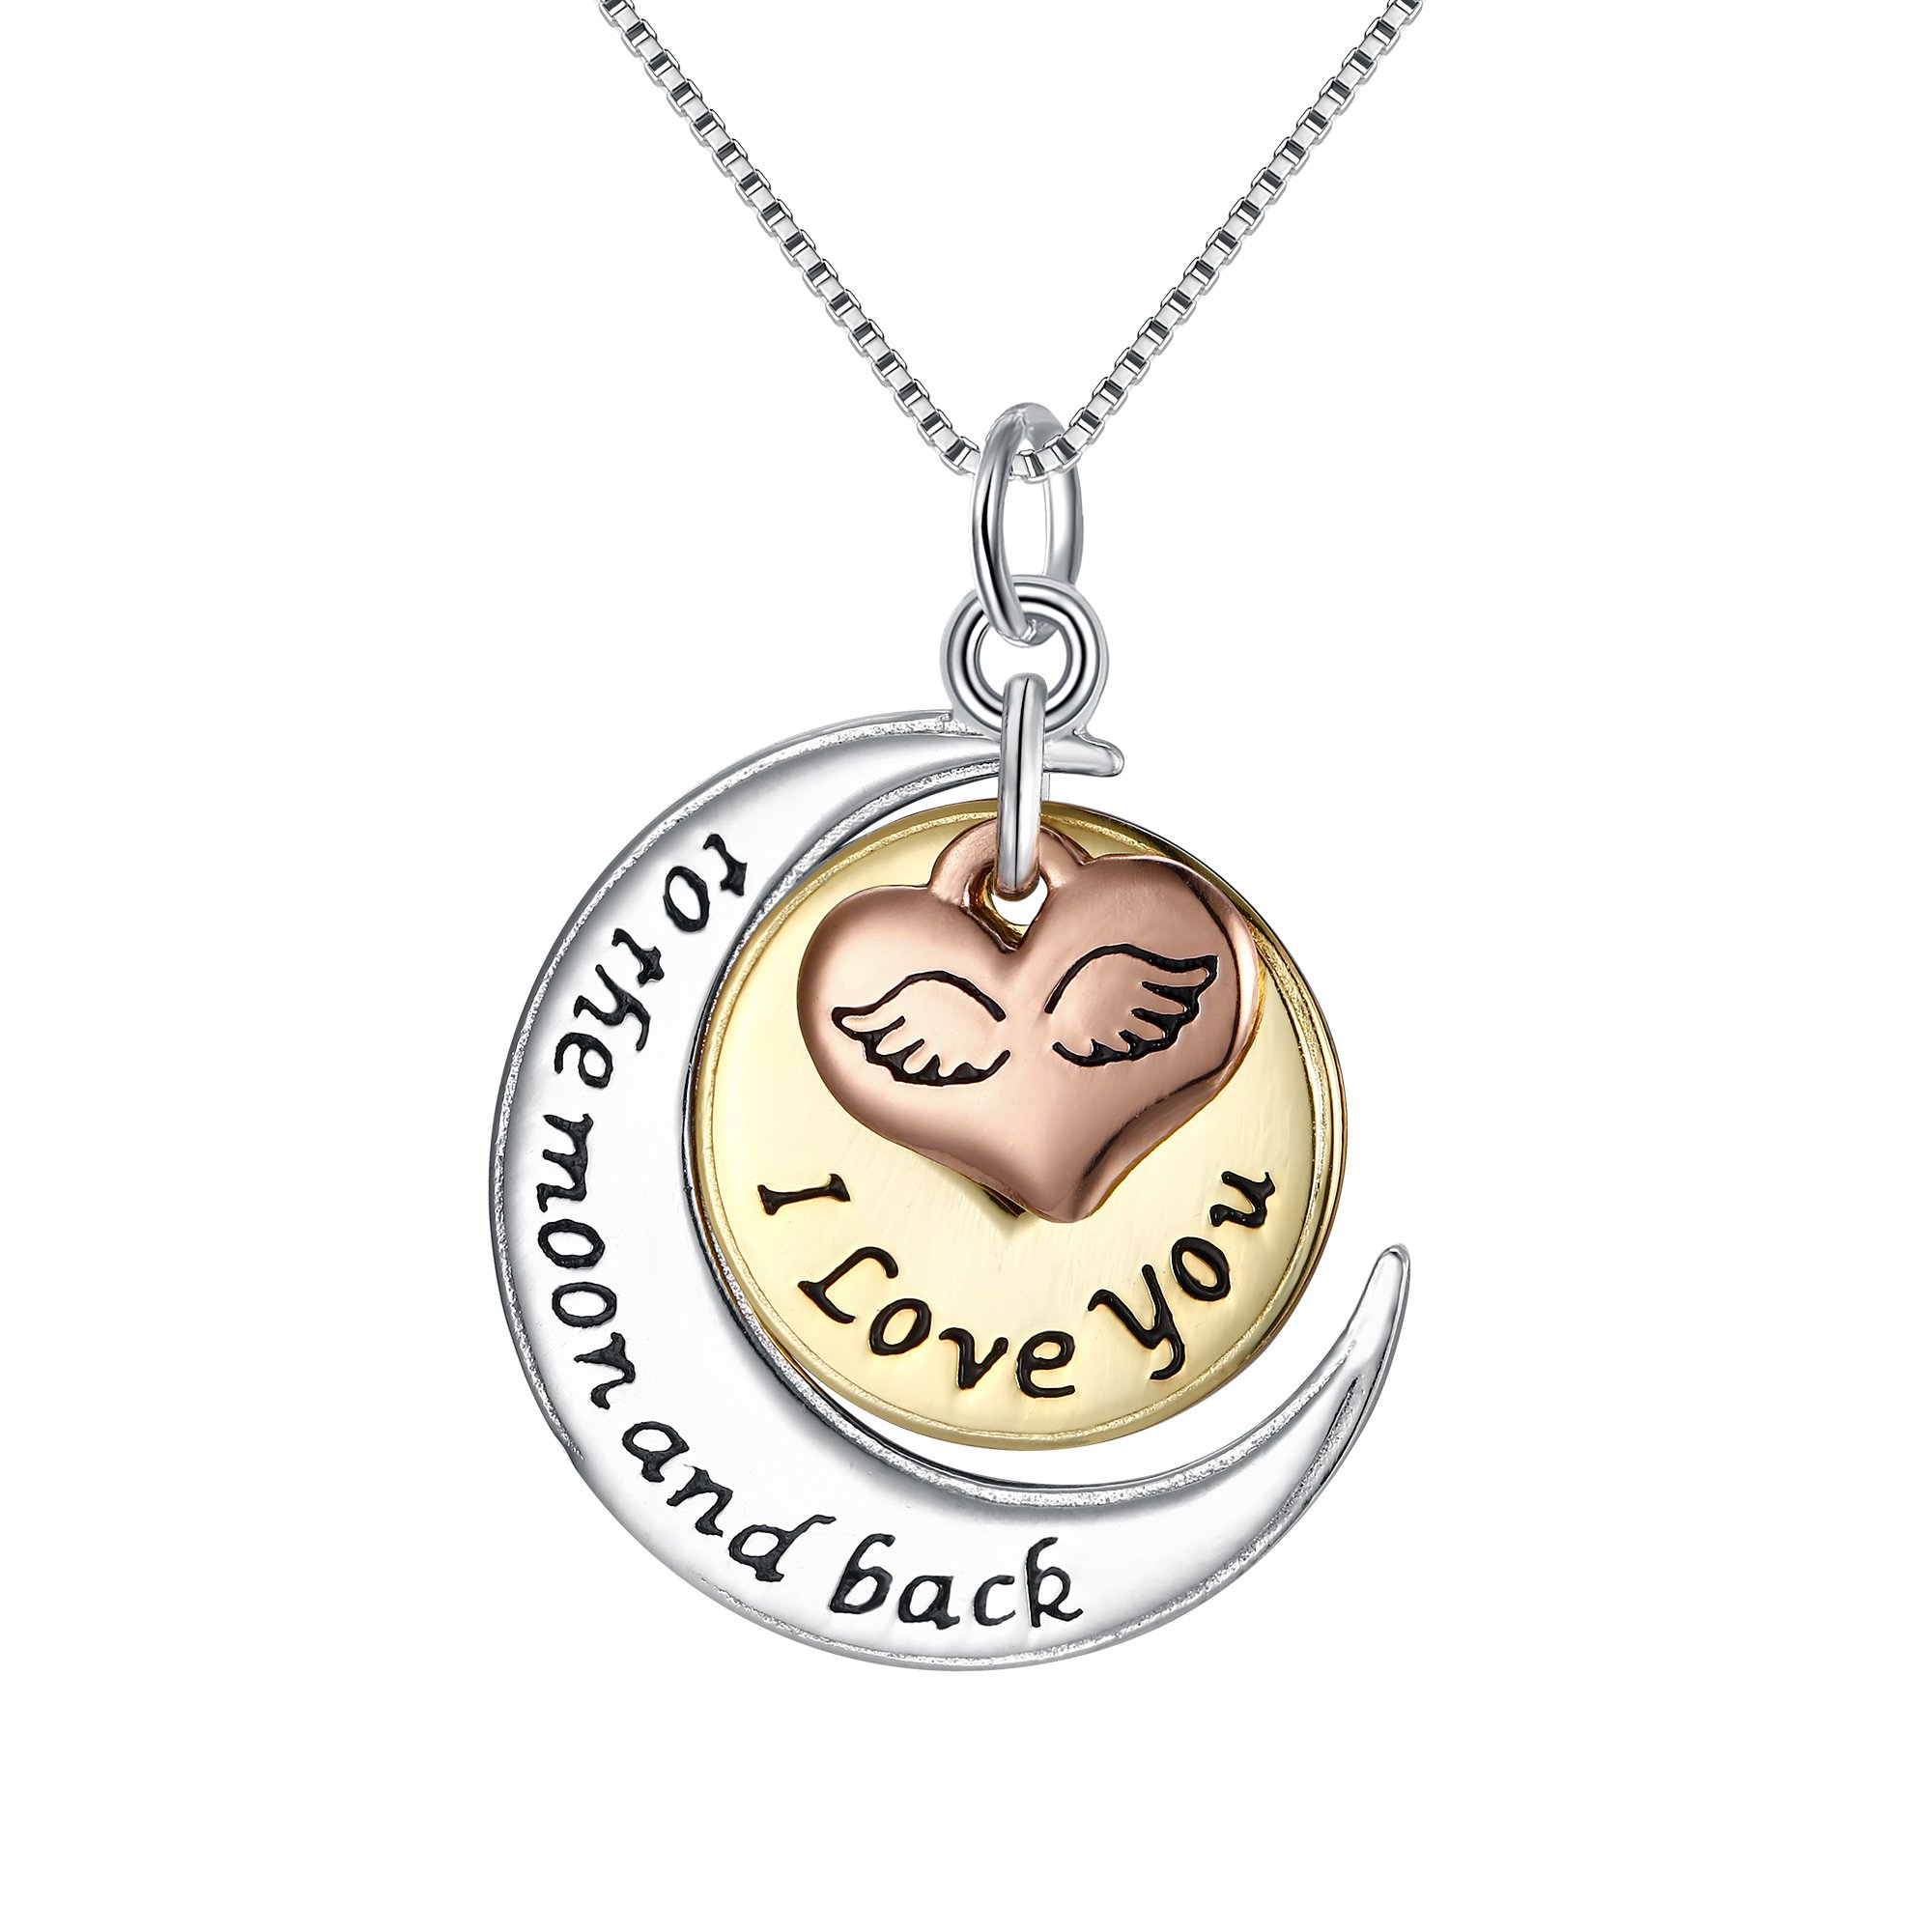 FANZE Women 925 Sterling Silver ''I Love You To The Moon And Back'' Star and Moon Angel's Wings Love Heart Pendant Necklace, Box Chain 18''